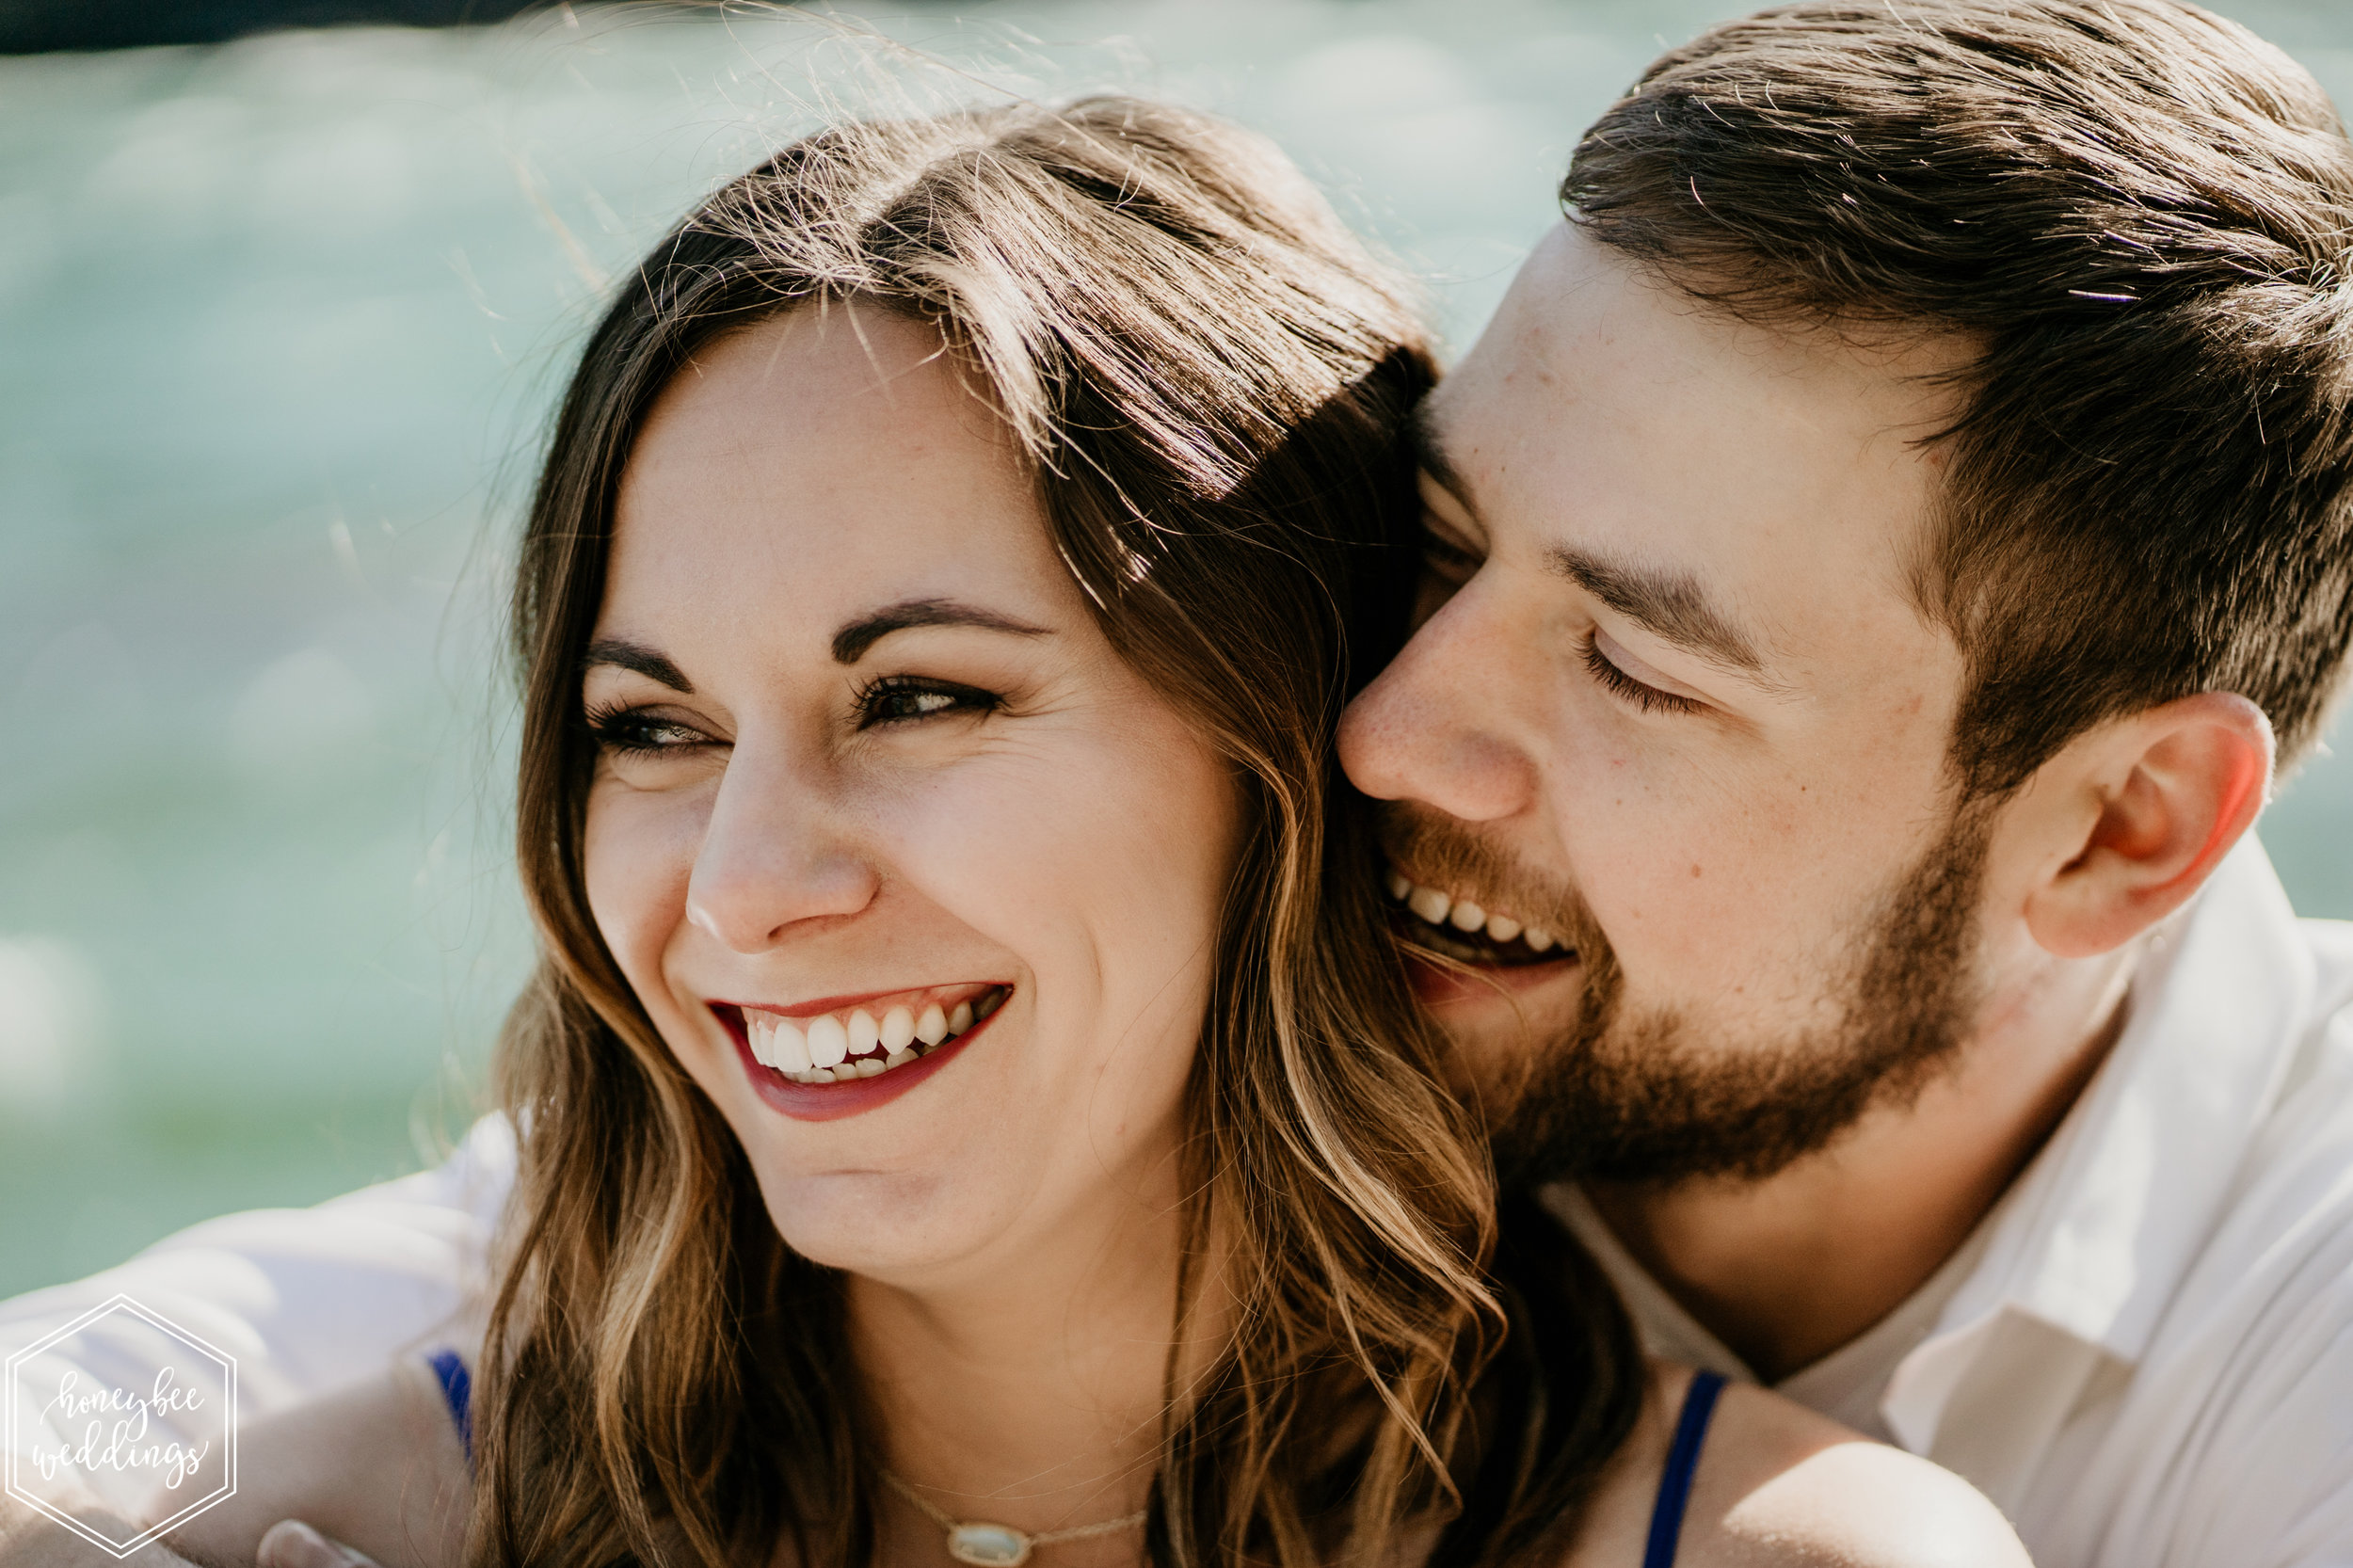 011Montana Wedding Photographer_Polson Engagement Session_Carrie & Matt_Honeybee Weddings_May 11, 2019-30.jpg